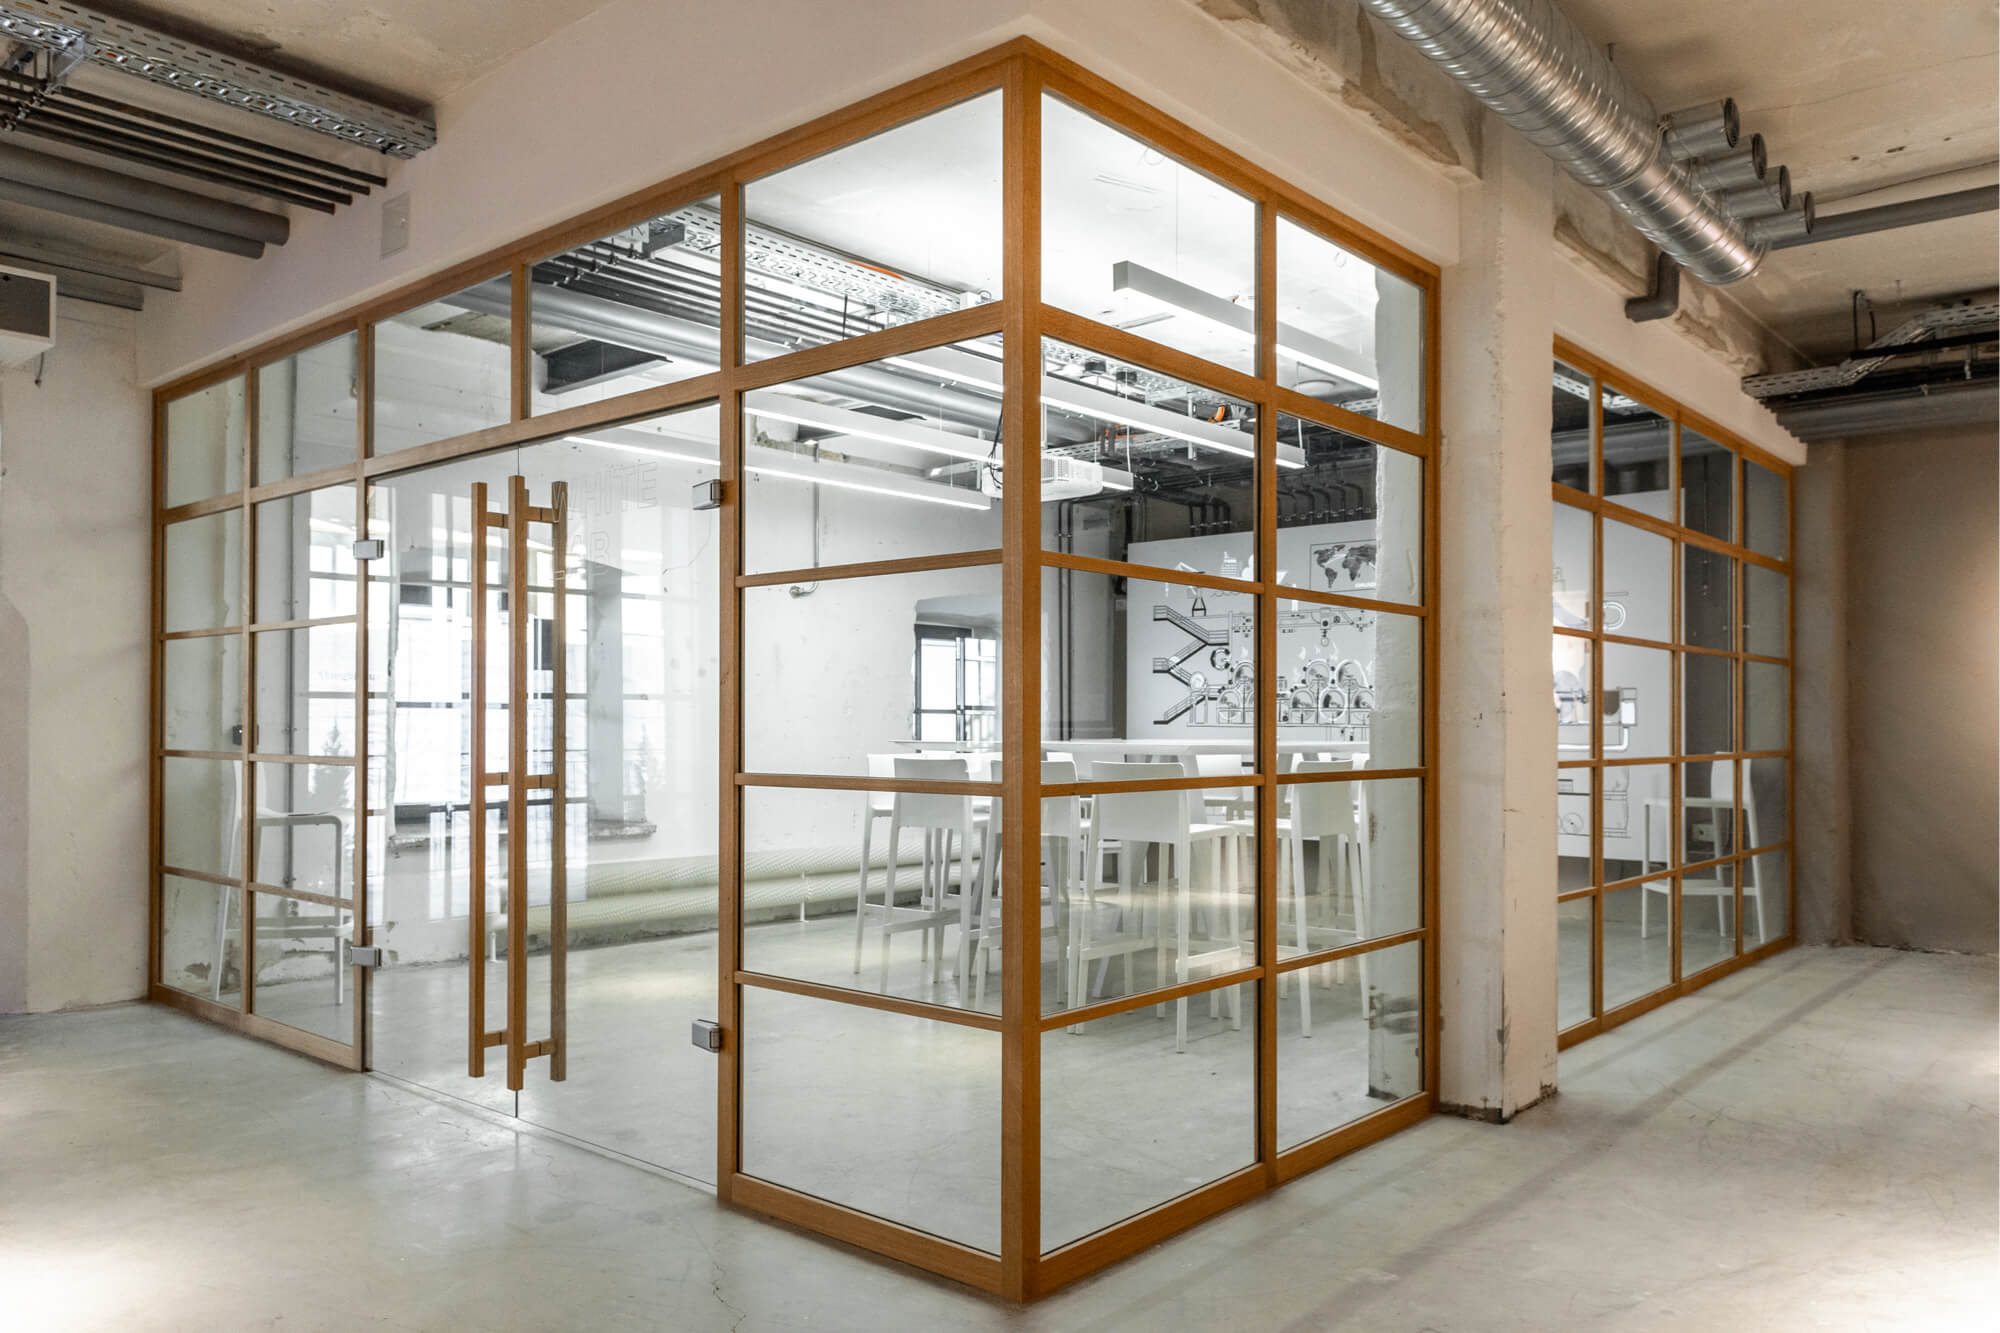 Modern meetingroom with see-trough glassy walls